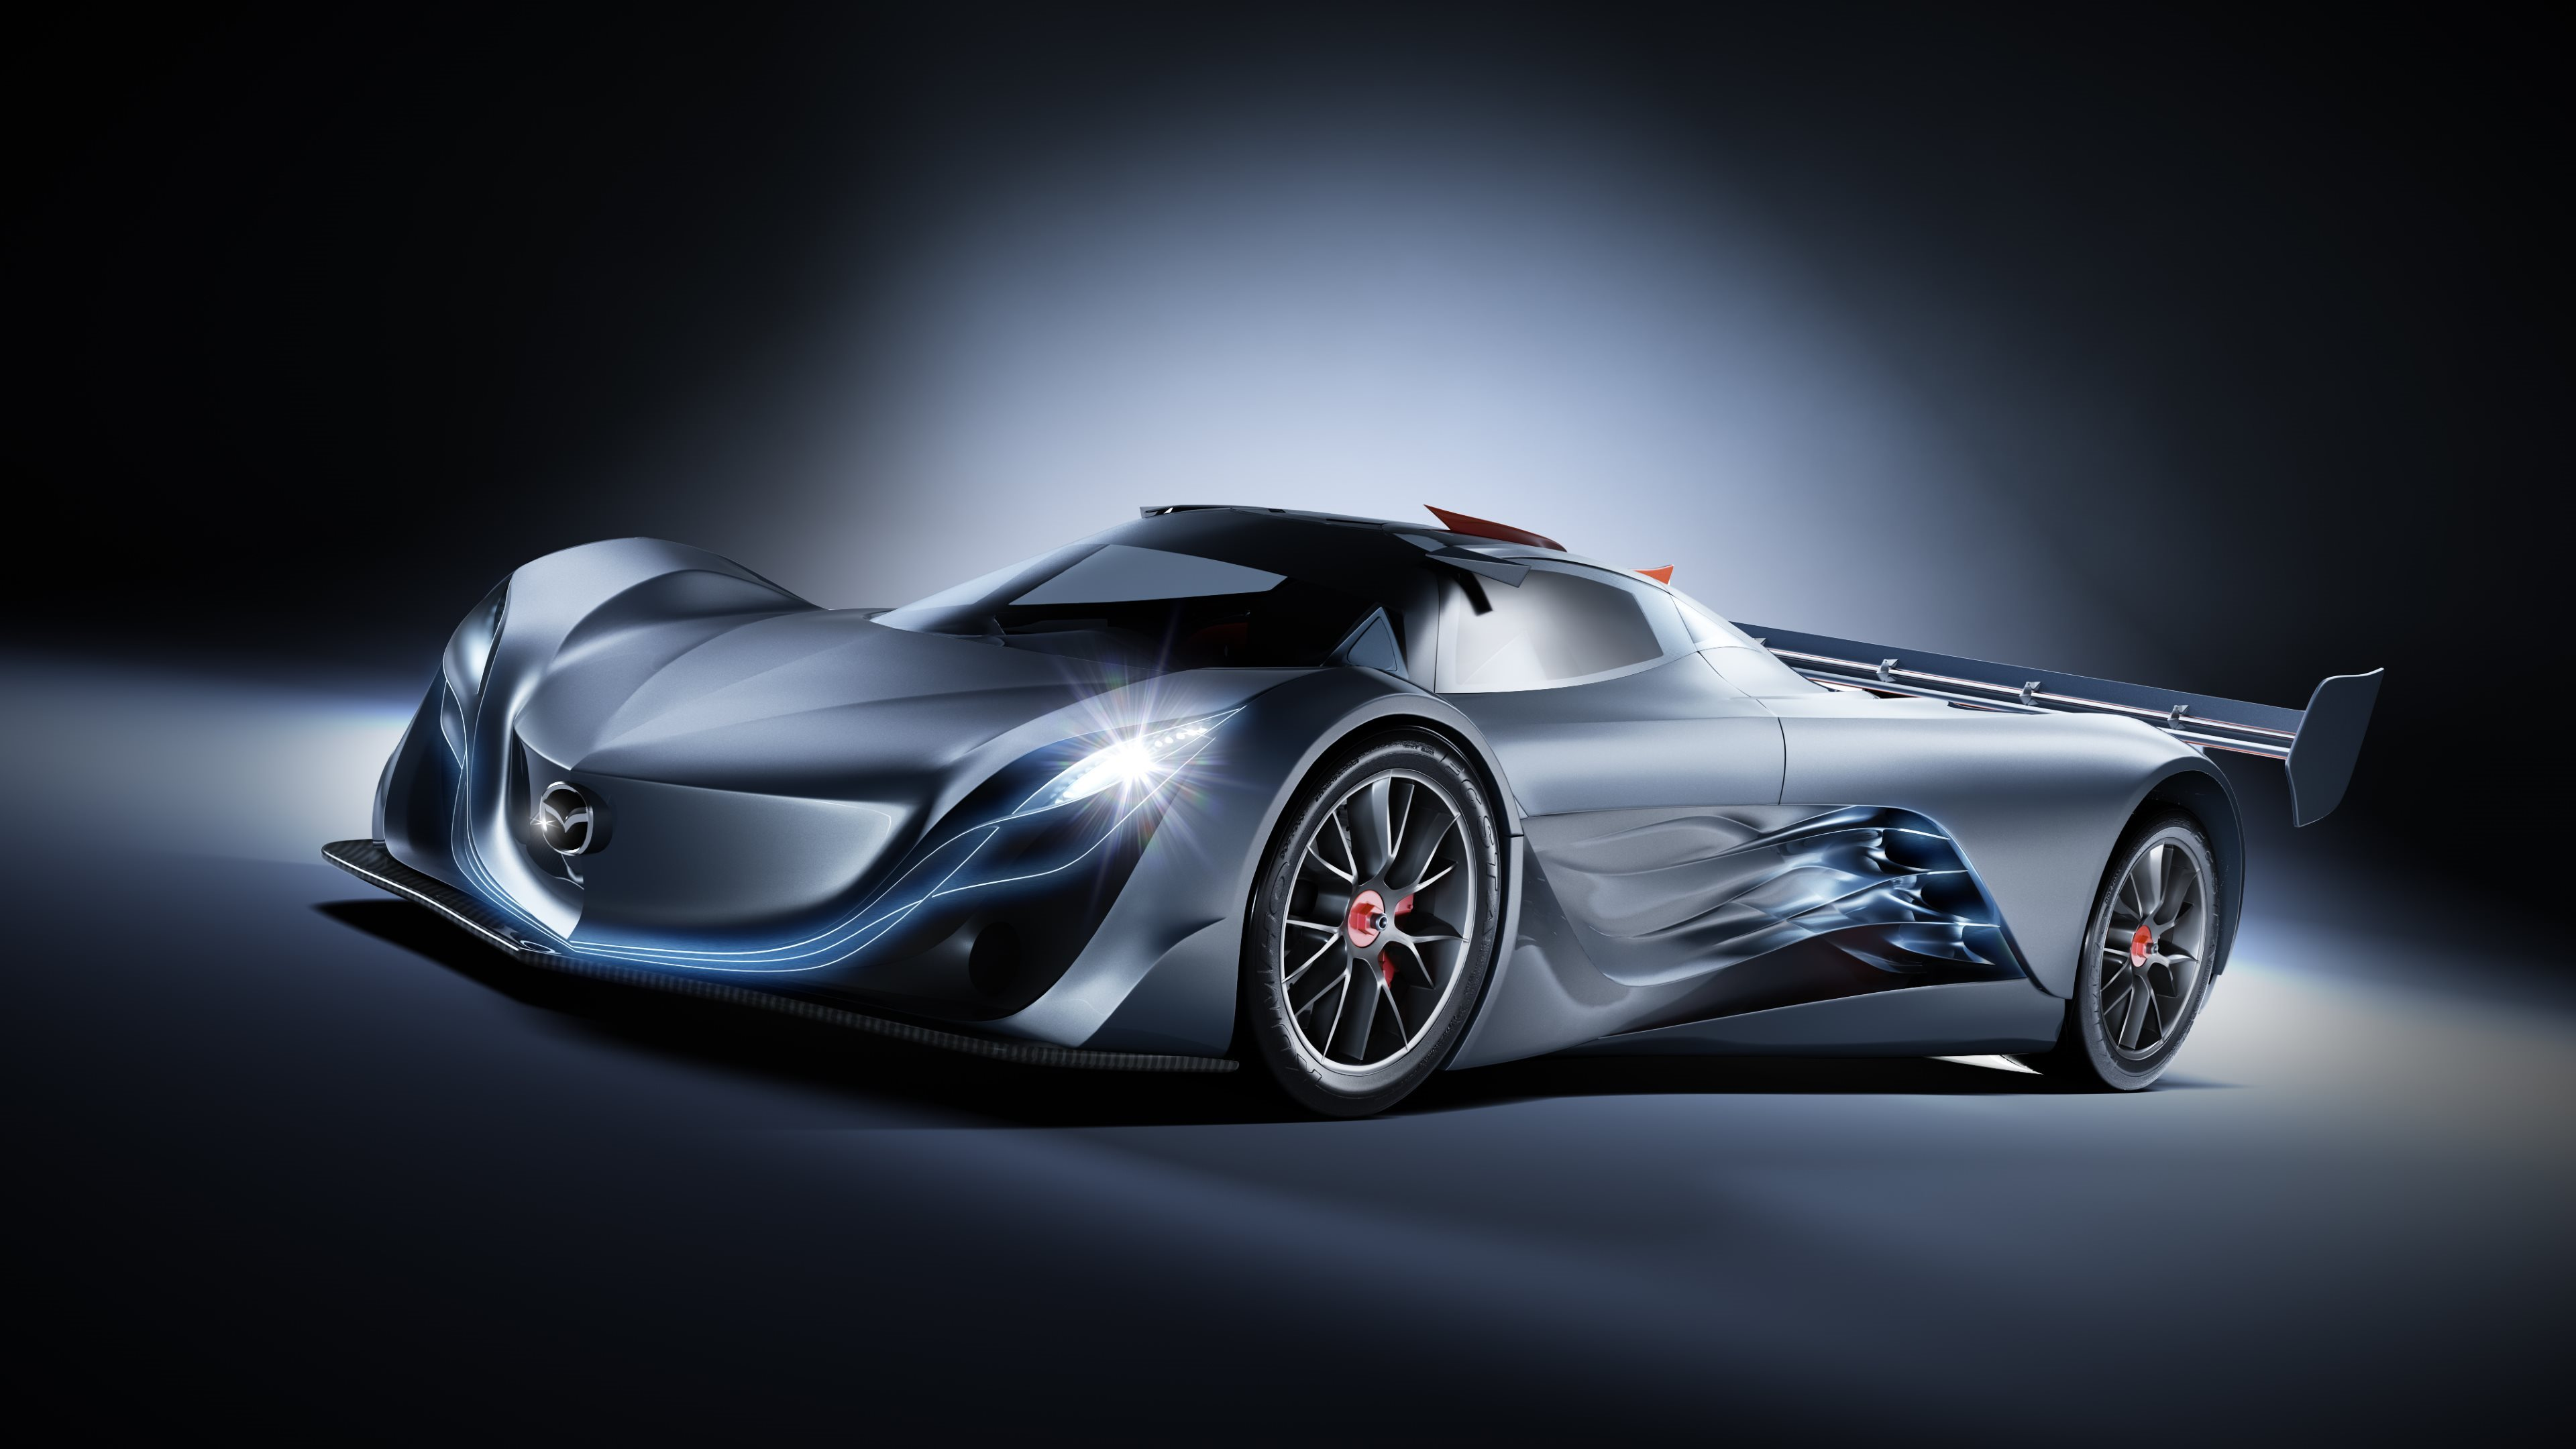 Mazda Furai 4k Wallpaper Hd Car Wallpapers Id 9513